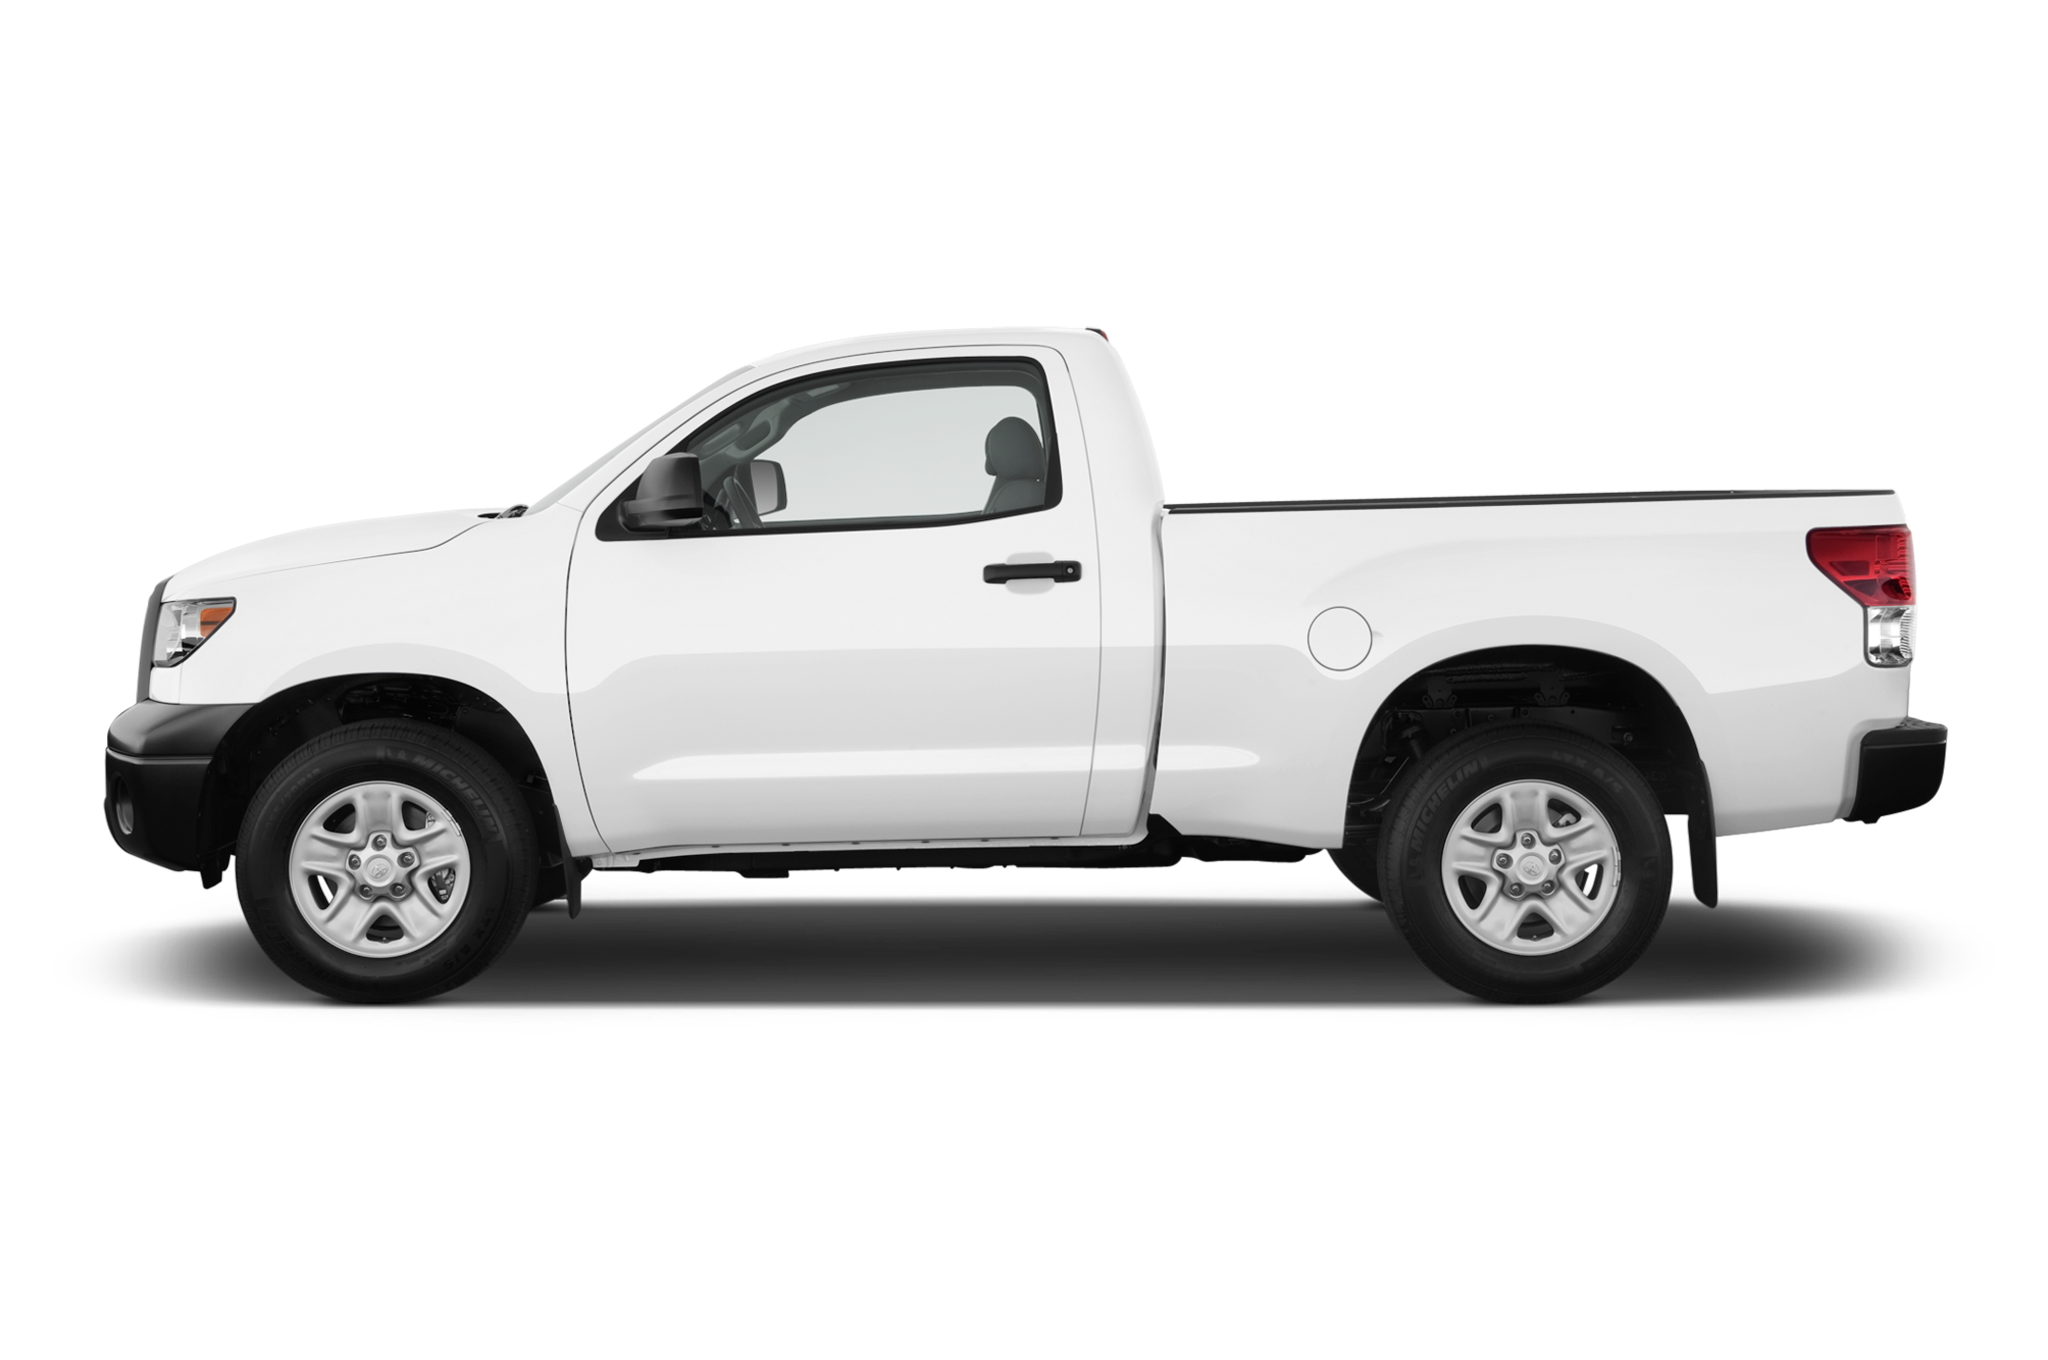 2010 toyota tundra double cab toyota fullsize pickup truck review automobile magazine. Black Bedroom Furniture Sets. Home Design Ideas